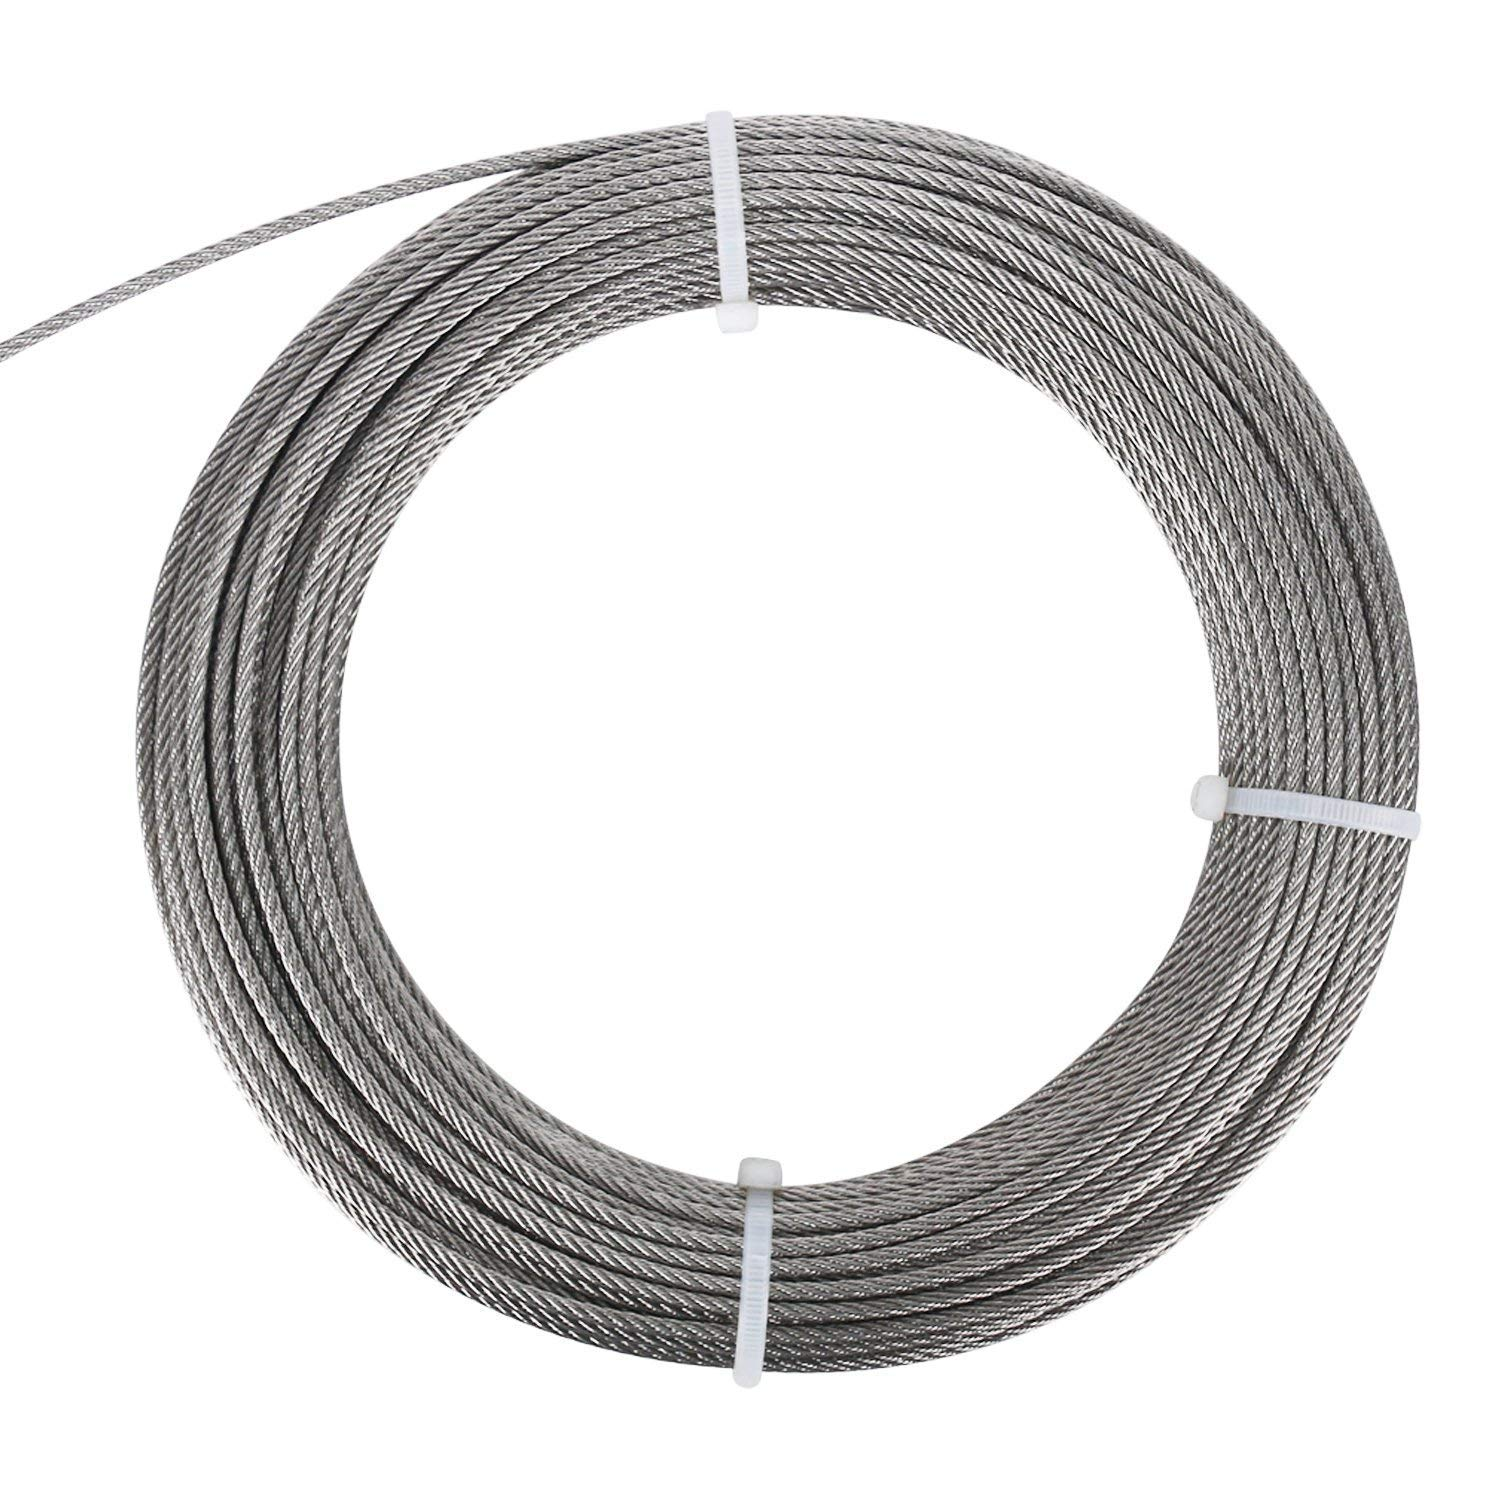 FOLUXING 316 Stainless Steel Wire Rope 1/8'' Aircraft Wire Rope Cable 7x7 for Railing Kit,Decking, DIY Balustrade(164Ft) by FOLUXING (Image #1)